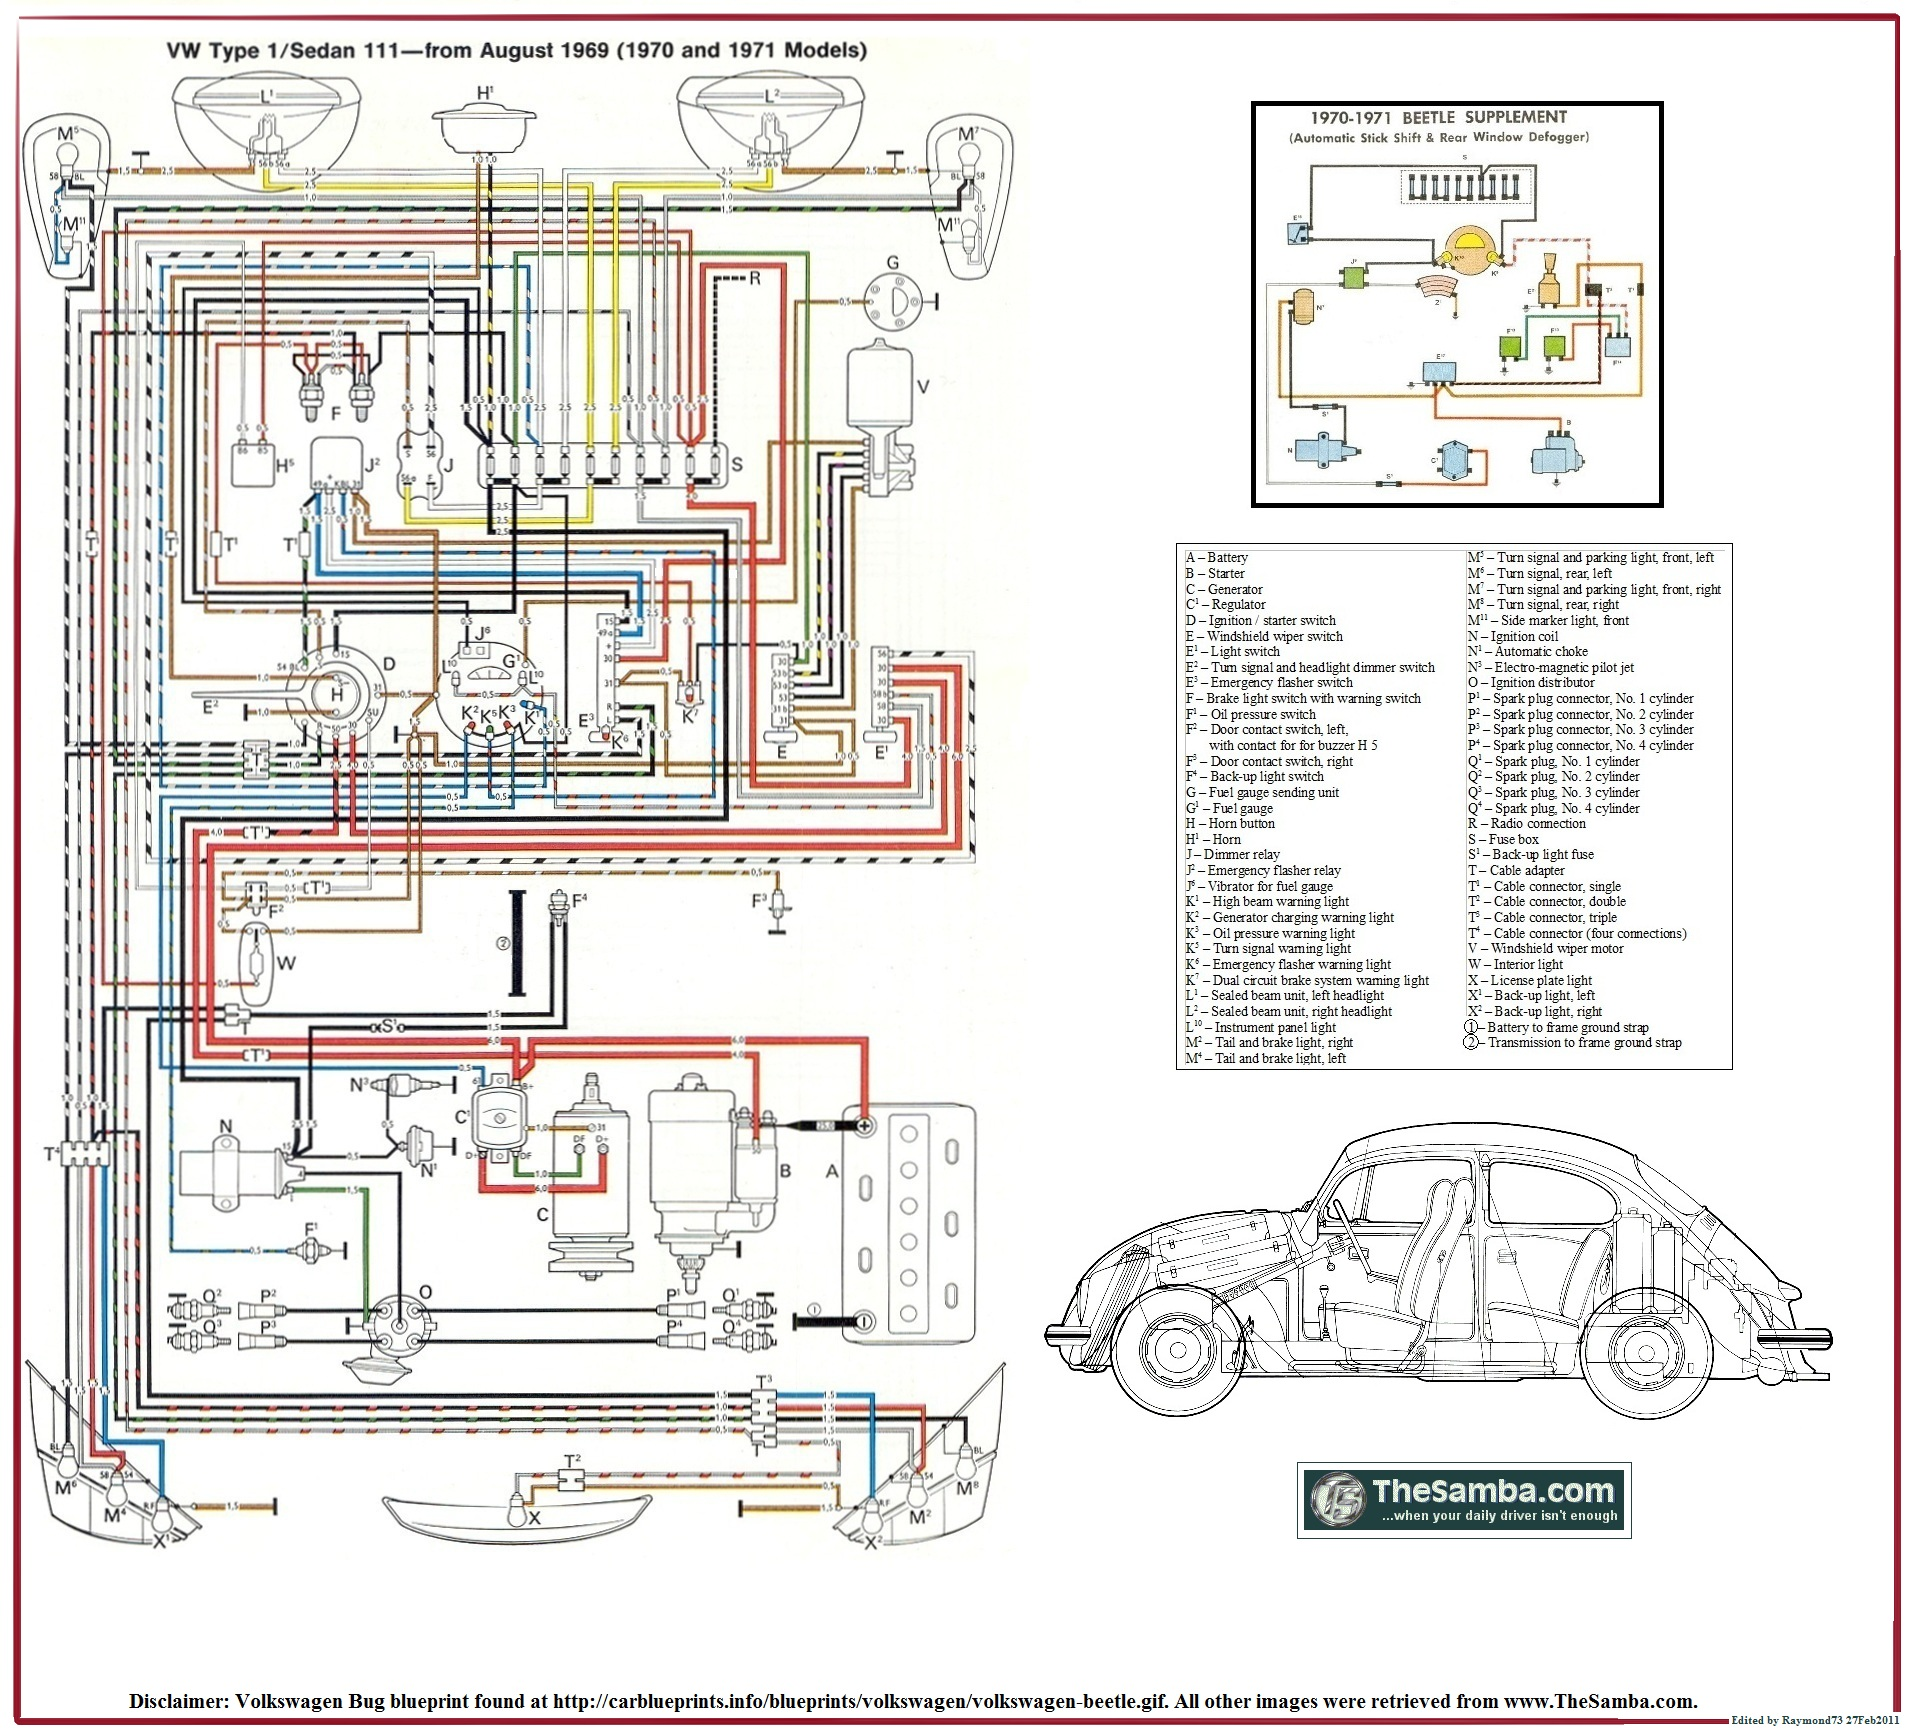 thesamba com beetle late model super 1968 up view topic rh thesamba com  1969 volkswagen beetle wiring diagram 1969 vw beetle voltage regulator  wiring ...